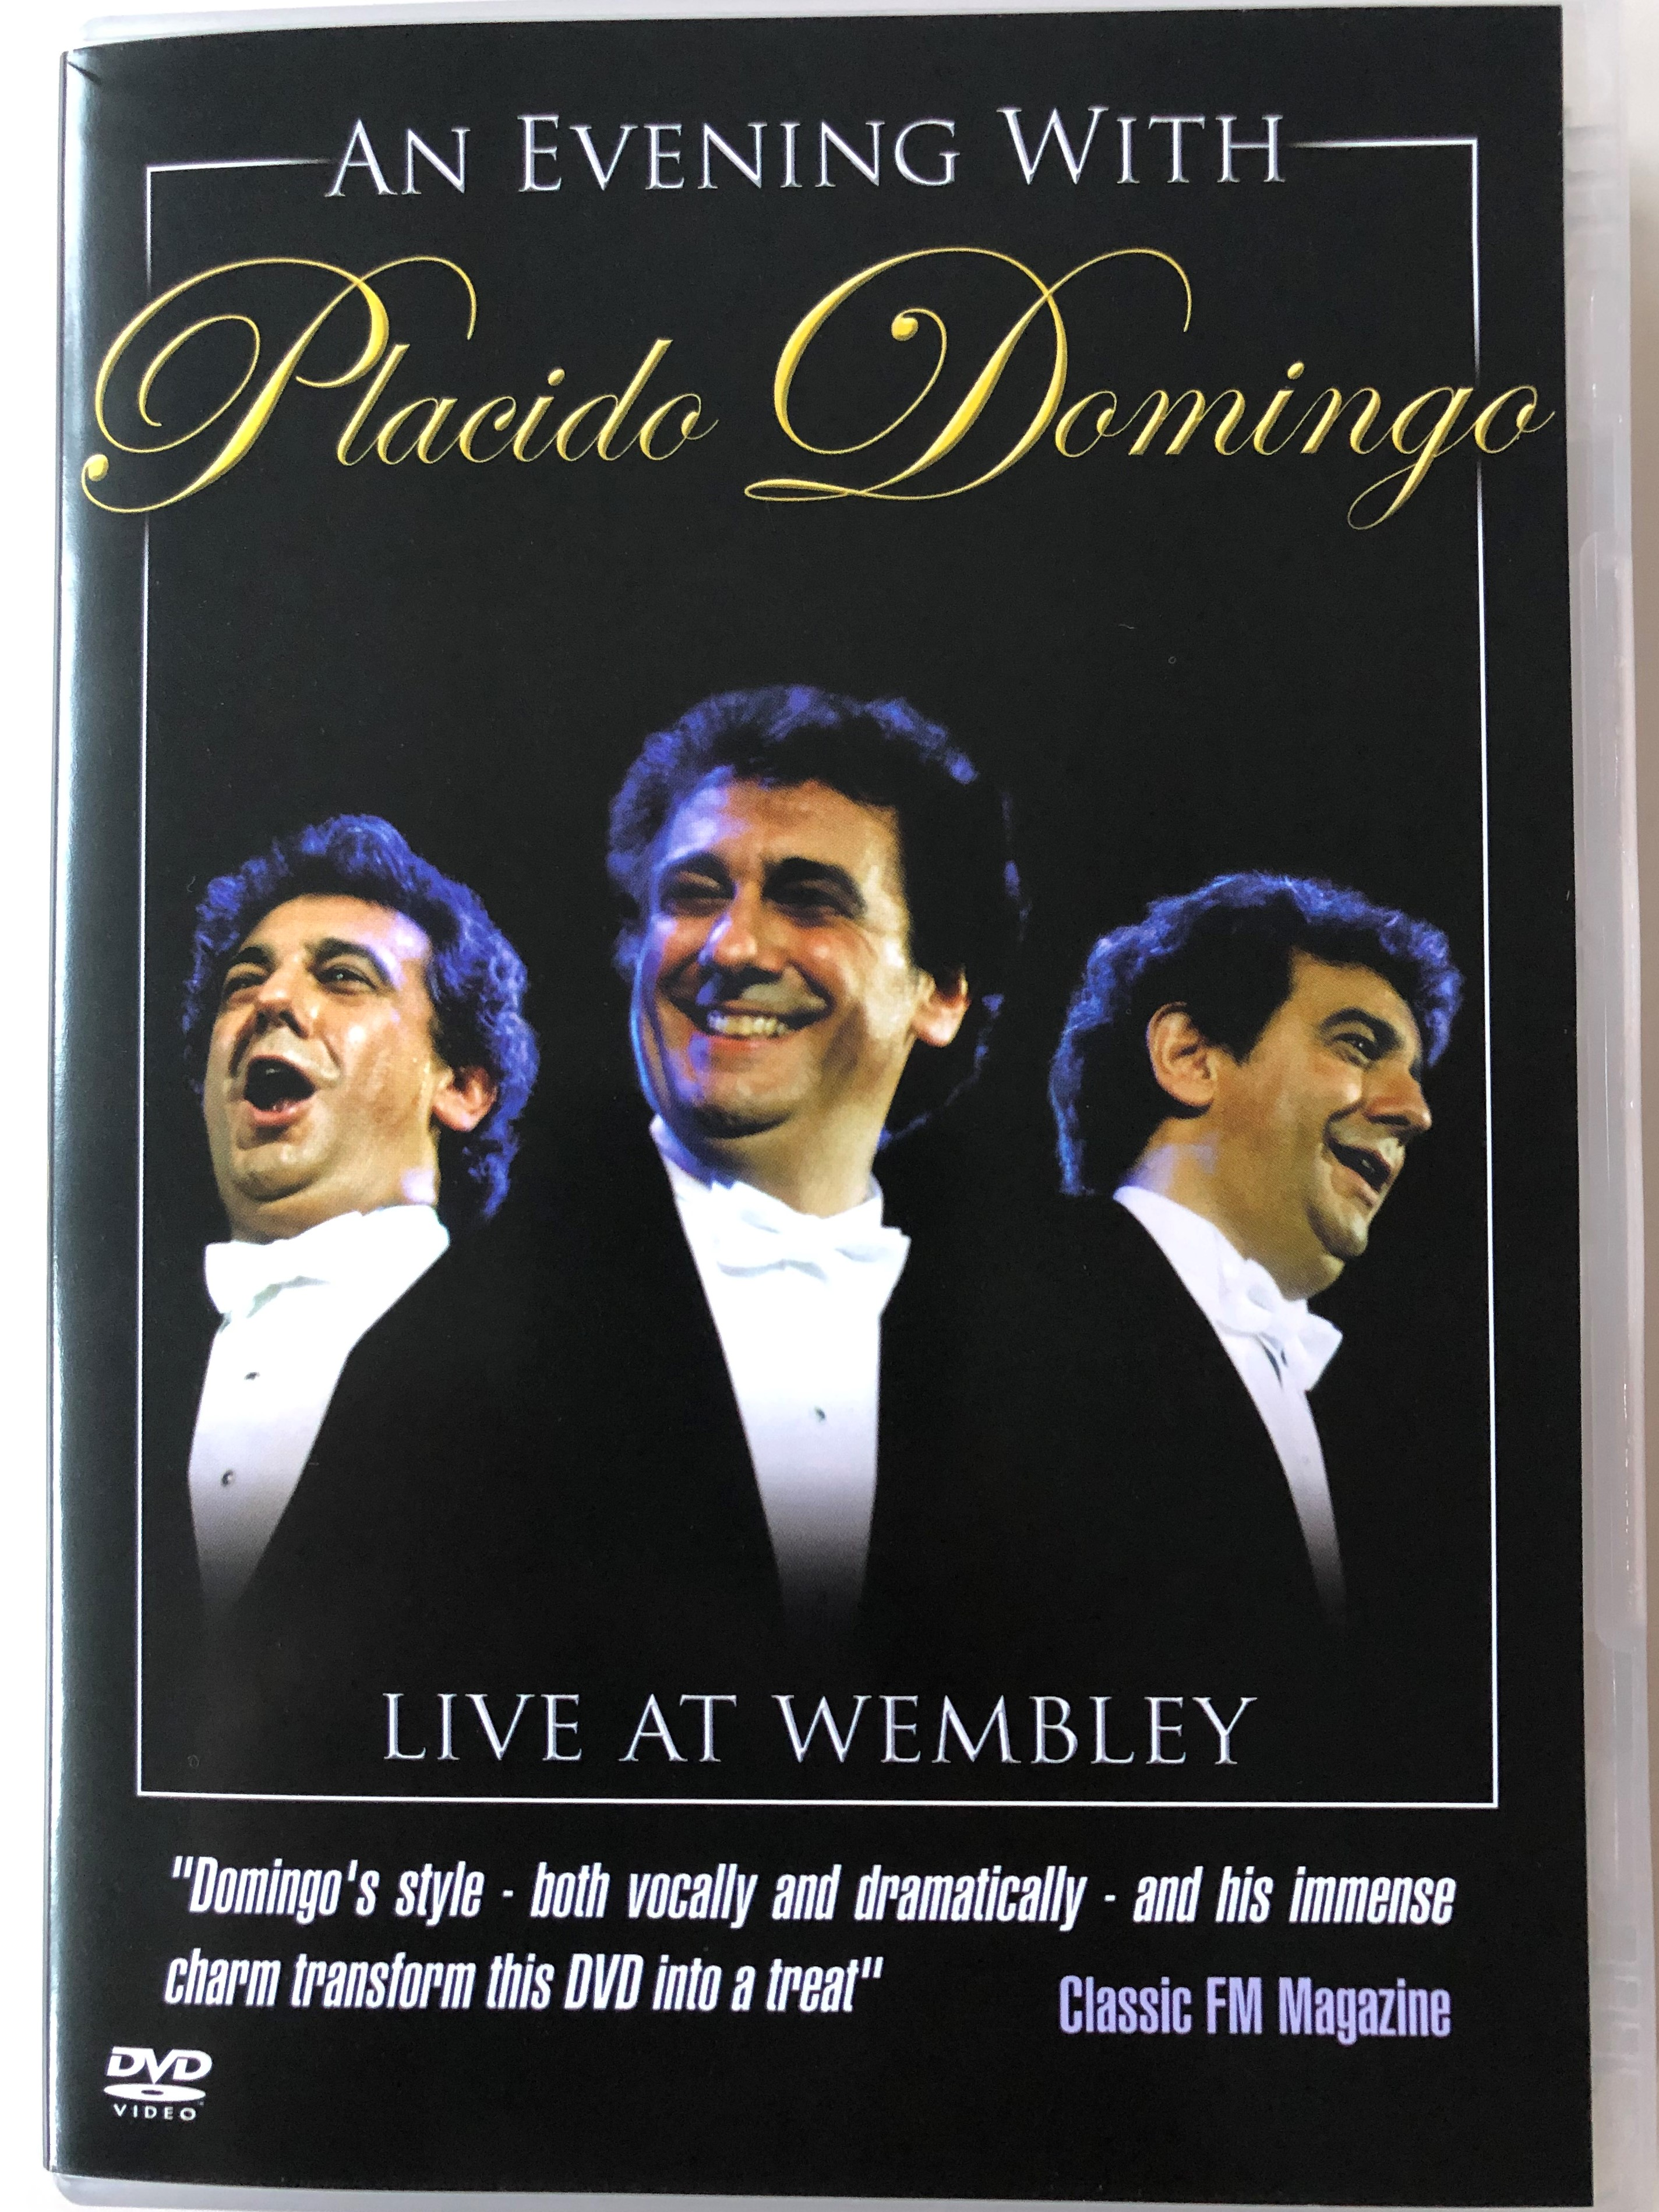 an-evening-with-placido-domingo-dvd-2002-live-at-wembley-1.jpg